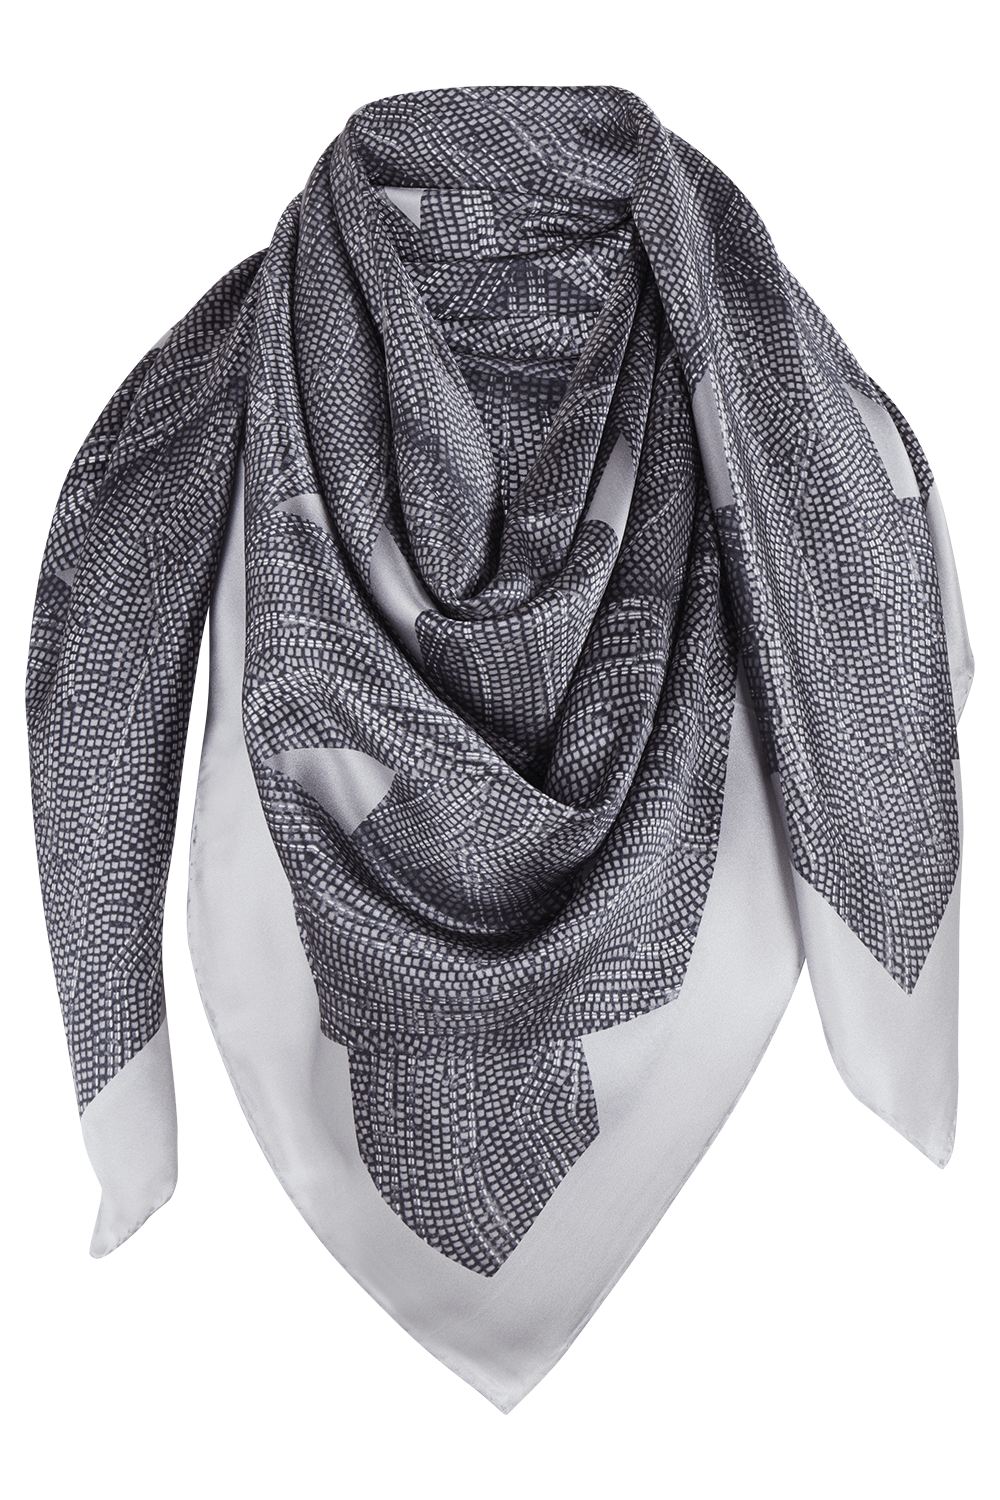 Manakaa Project accessory Sustainable Scarf in Peace Silk. sustainable fashion ethical fashion